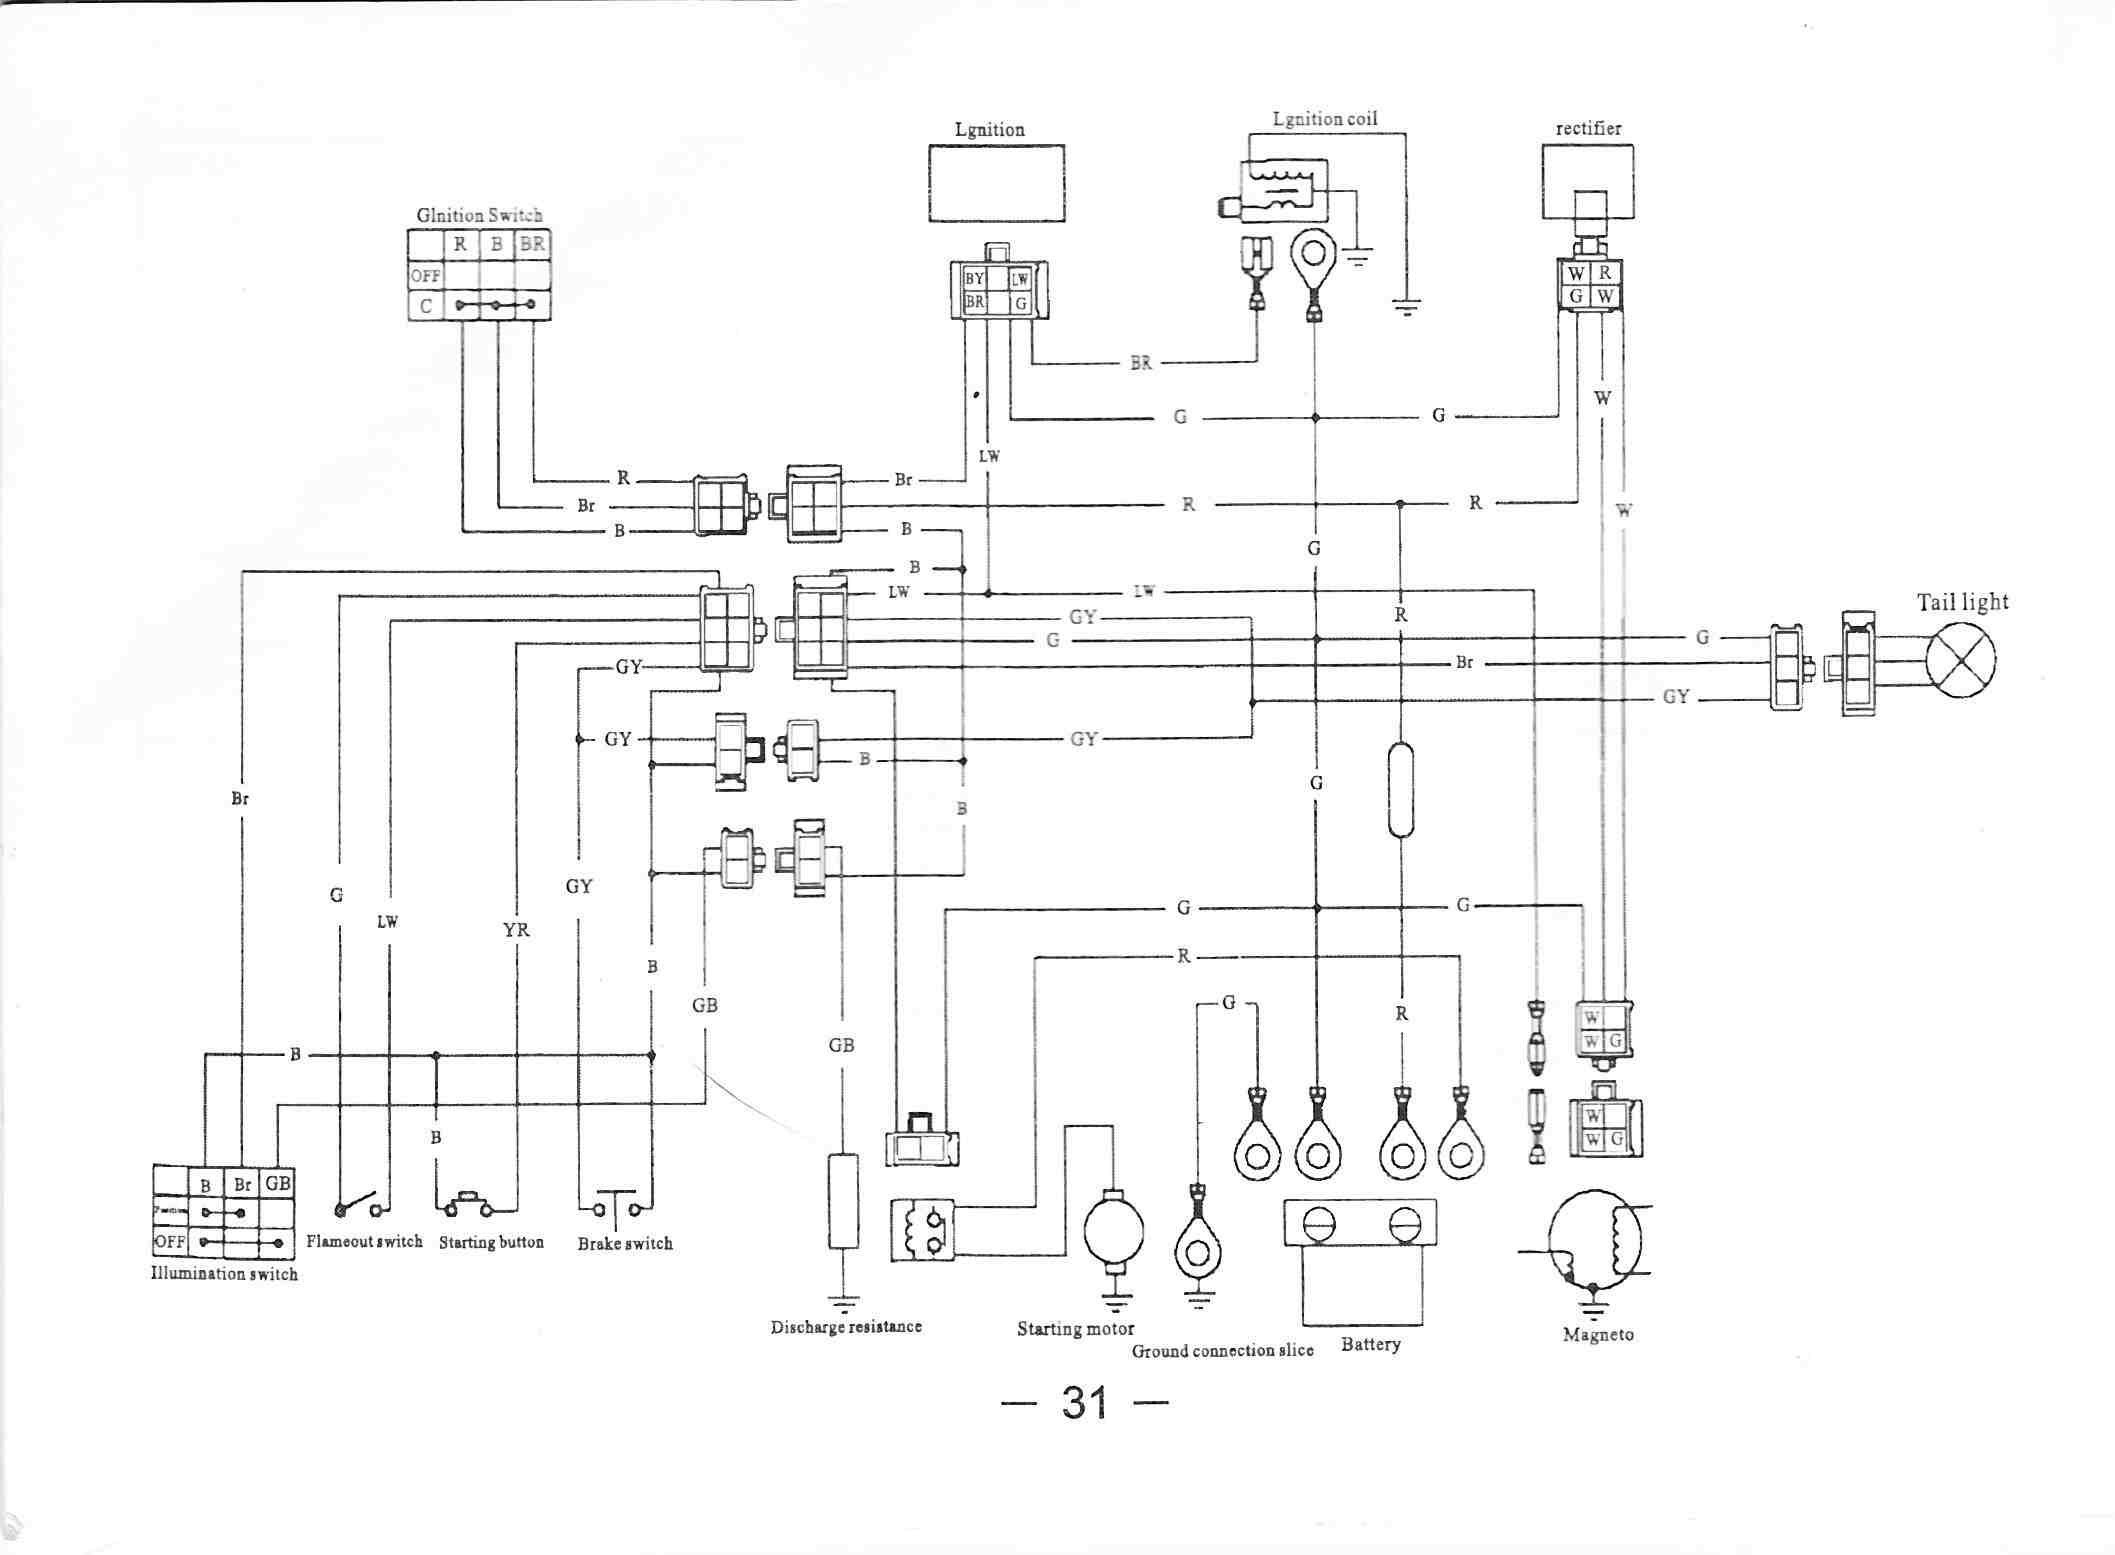 Pagsta wiring diagram 250cc electrical work wiring diagram wiring diagram zongshen 250cc free download wiring diagram xwiaw rh xwiaw us pagsta international pagsta international cheapraybanclubmaster